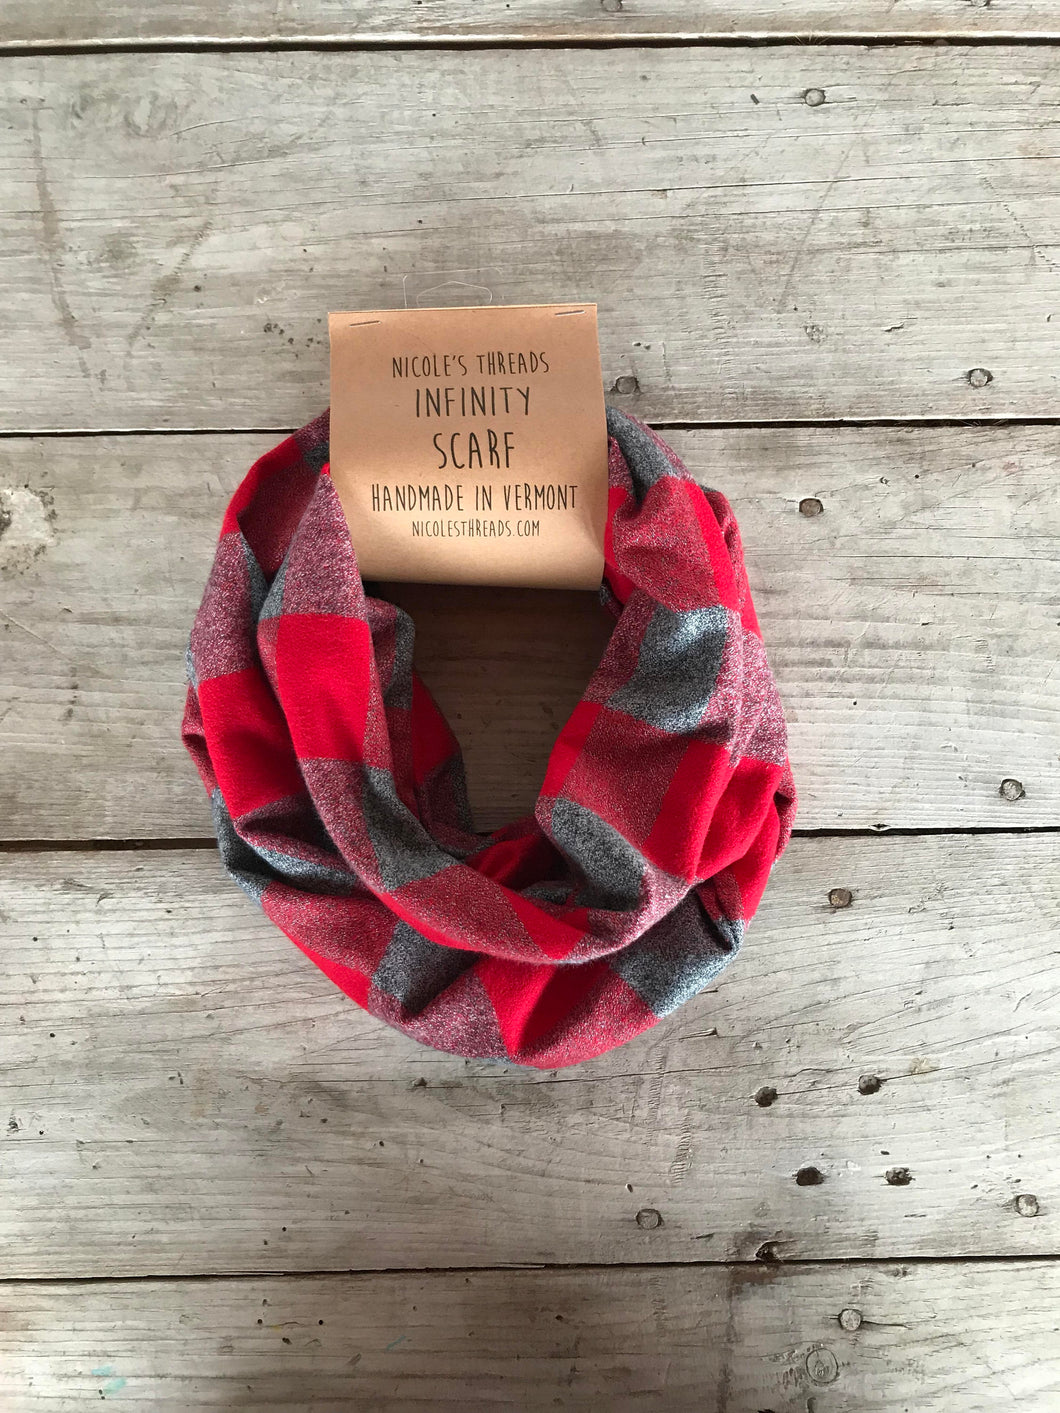 Plaid Flannel Infinity Scarf - Red and Grey Buffalo Plaid